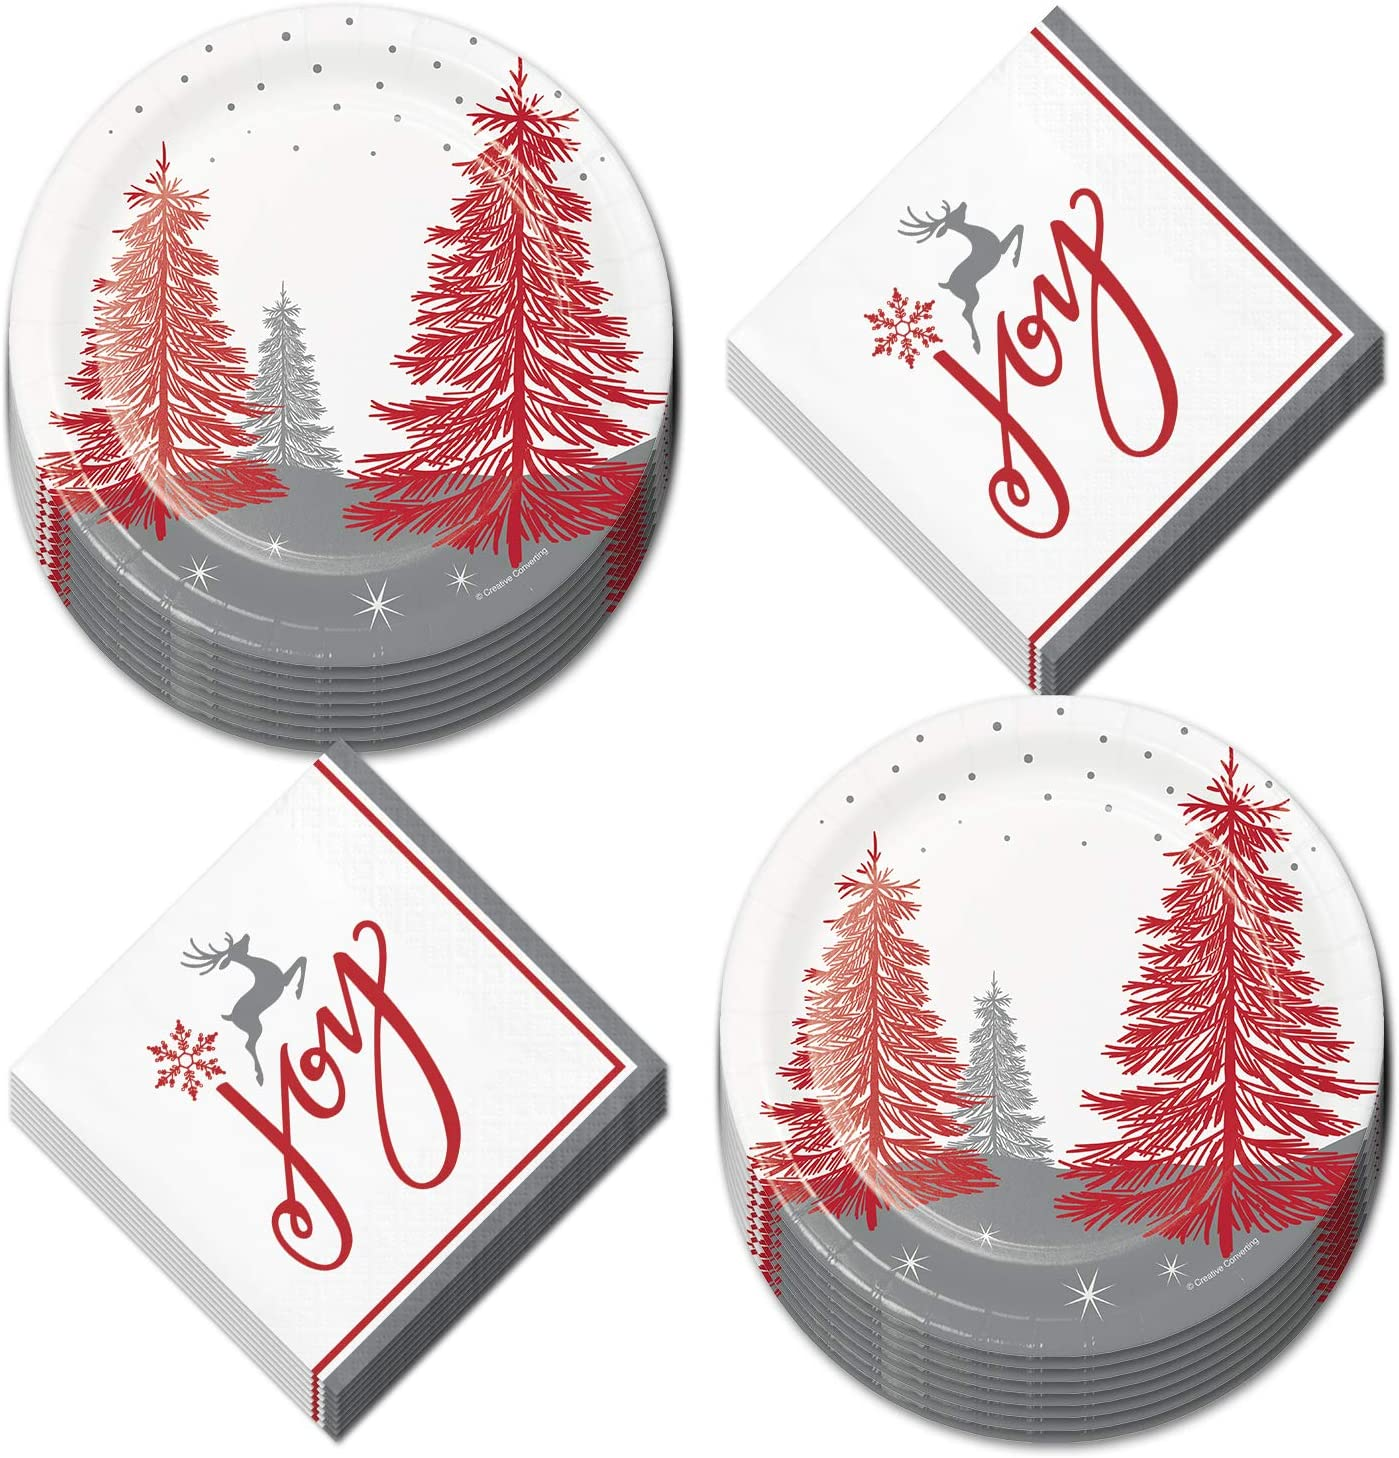 Christmas Paper Plates and Napkins - Red and Silver Merry and Bright Woodland Dessert Plates and Beverage Napkins (Serves 16)